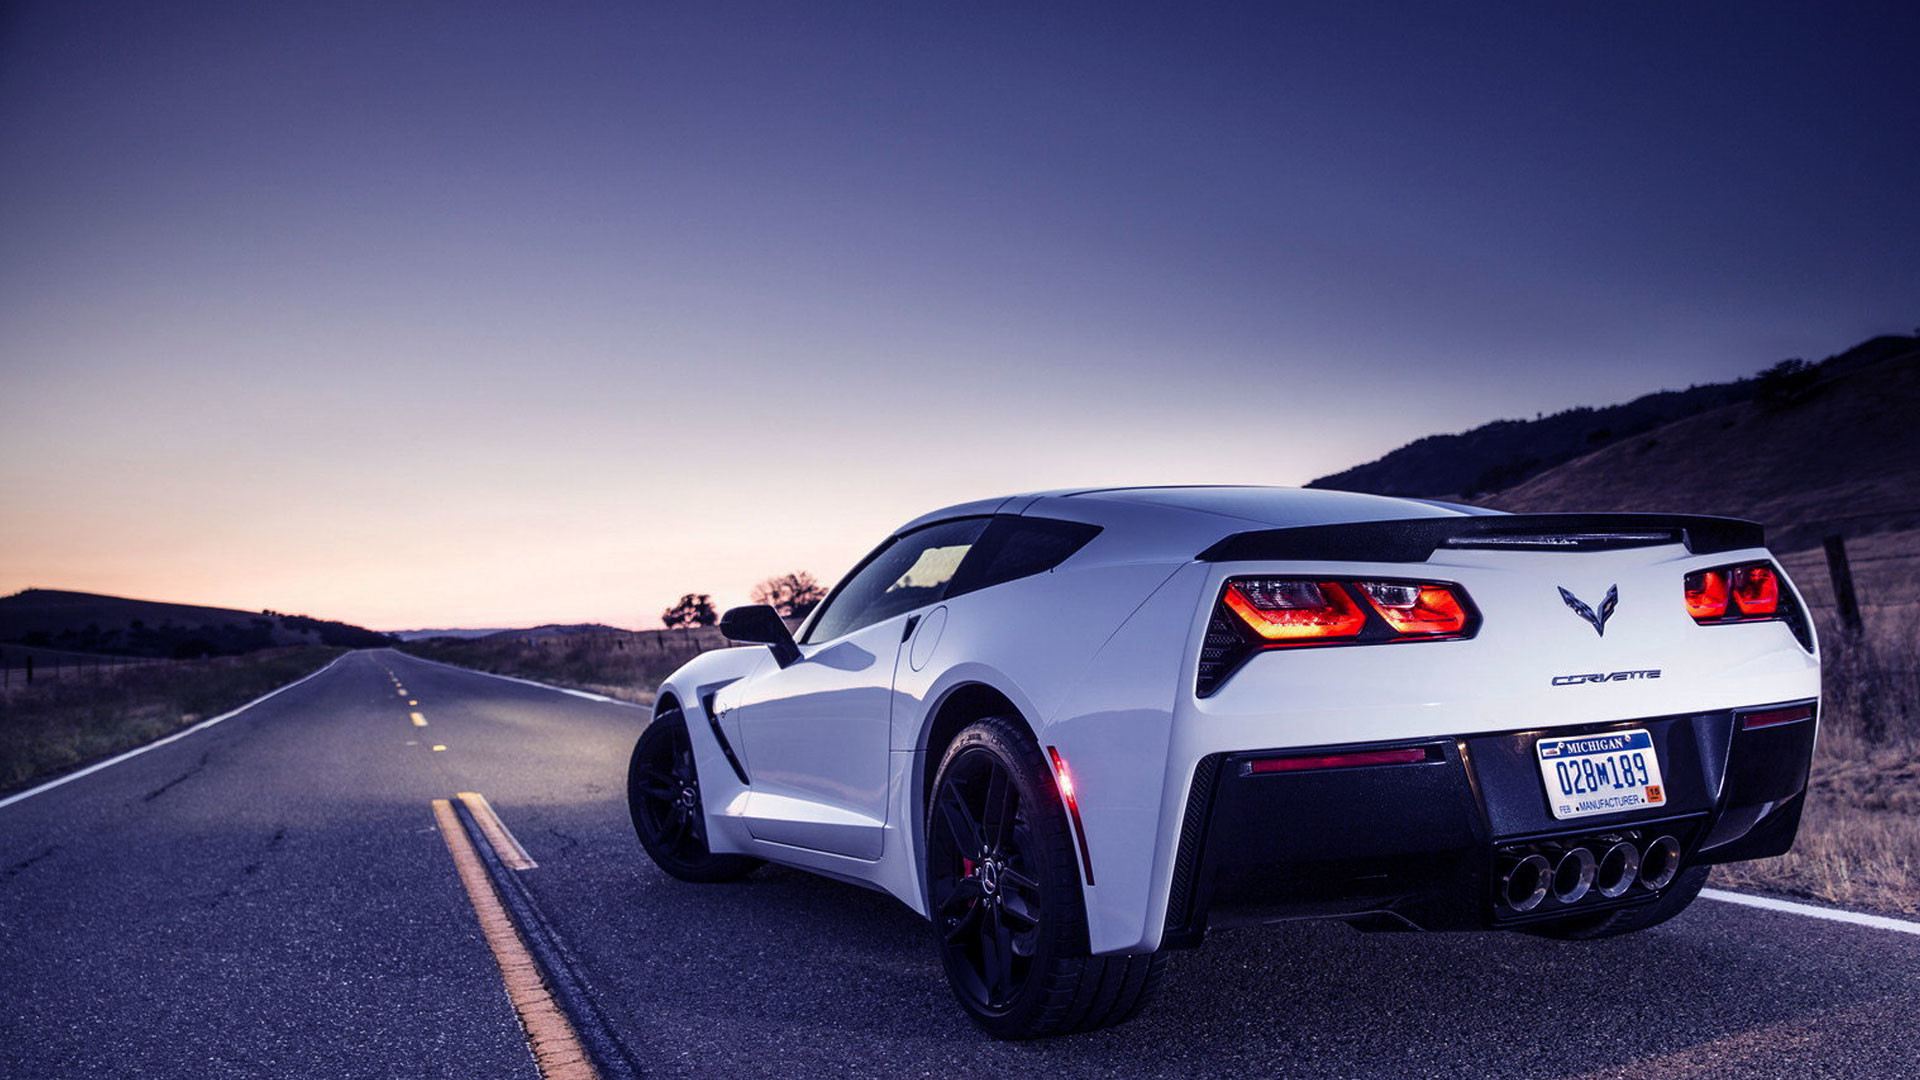 1920x1080 Chevrolet Corvette Grand Sport Wallpaper HD Car Wallpapers 1600×1200  Corvette Wallpaper (49 Wallpapers